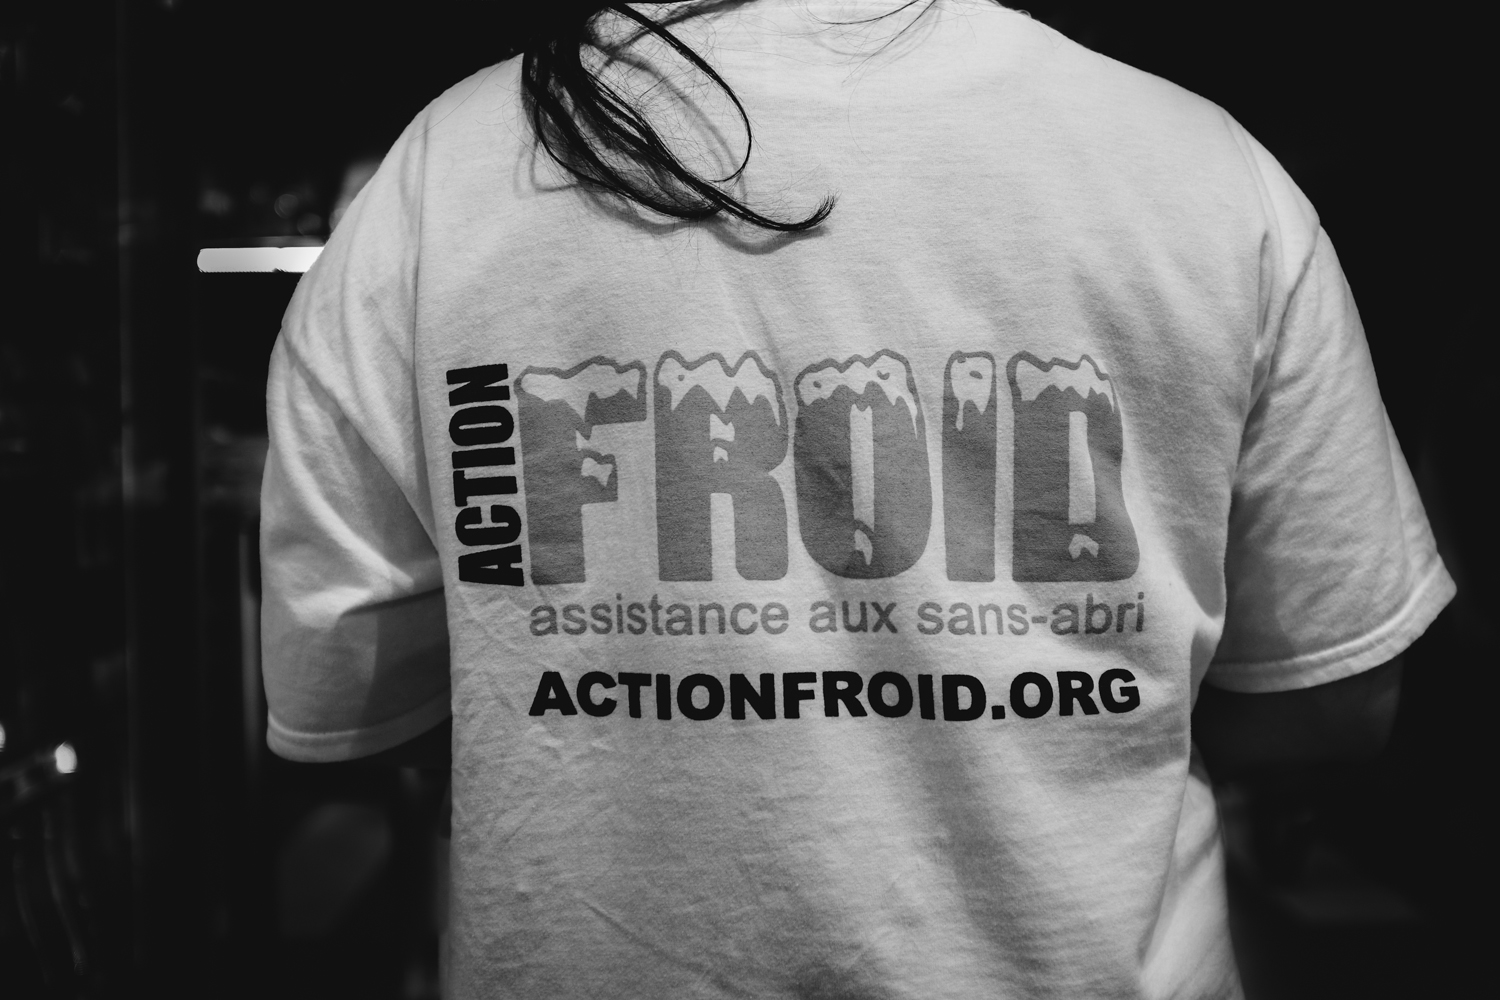 09 - action froid - 10 octobre 2015-3.jpg